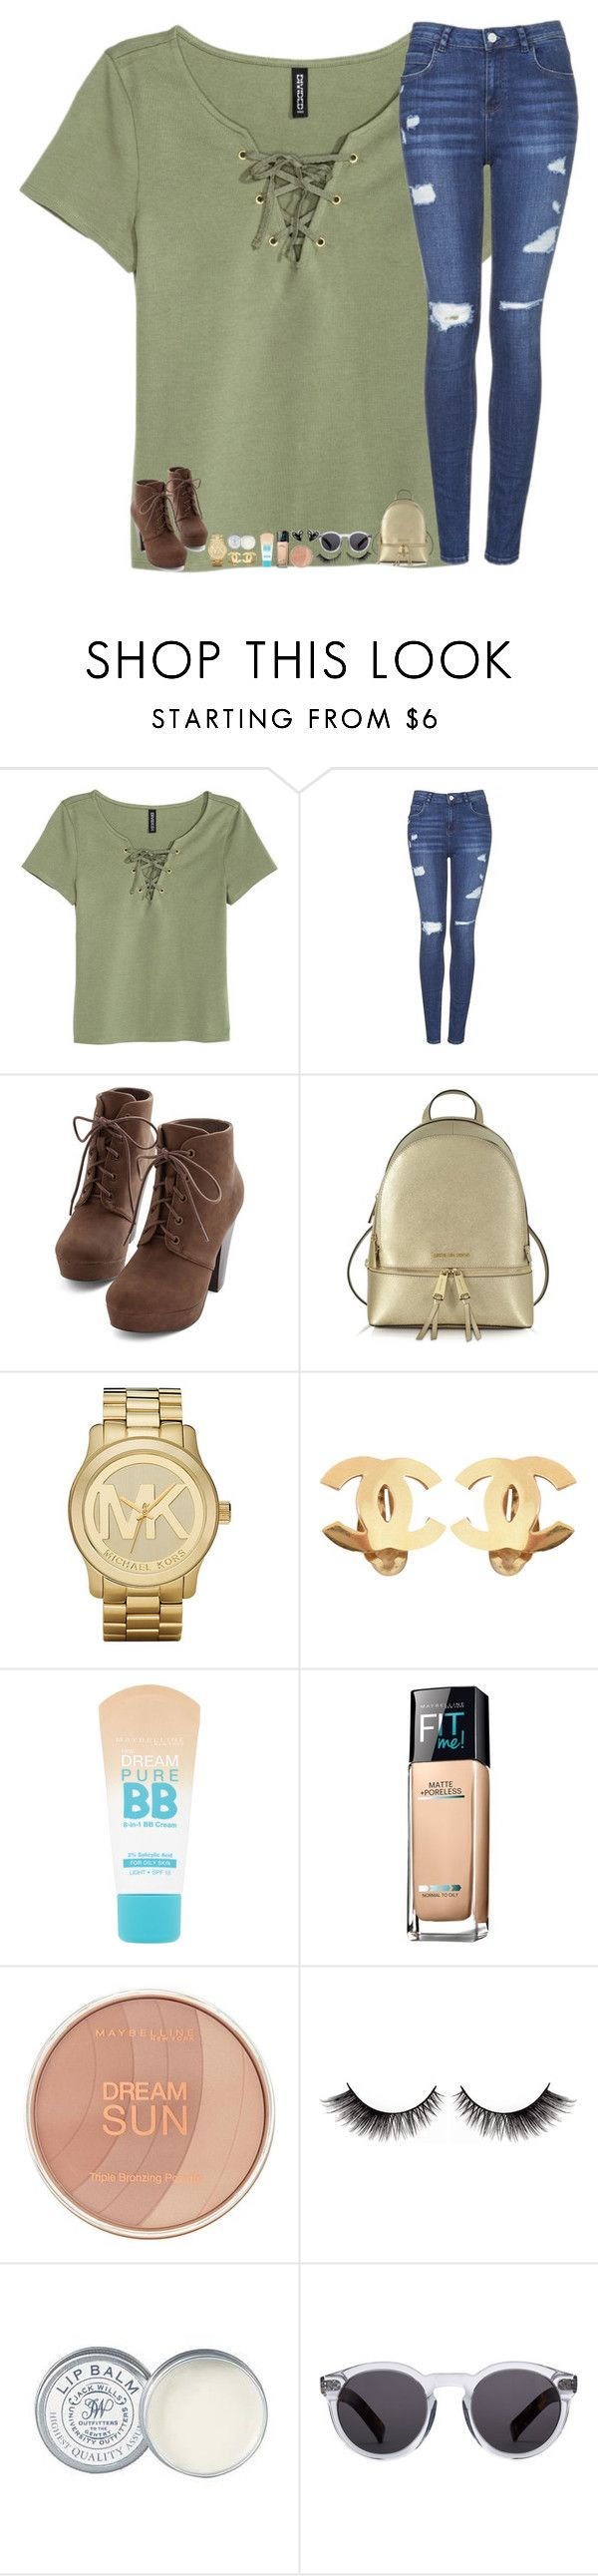 """NEW SEASON OF GILMORE GIRLS IS ON NETFLIX BYE!!!!!!!!!!"" by mmprep ❤ liked on Polyvore featuring H&M, Topshop, Michael Kors, Chanel, Maybelline, Jack Wills and Illesteva"